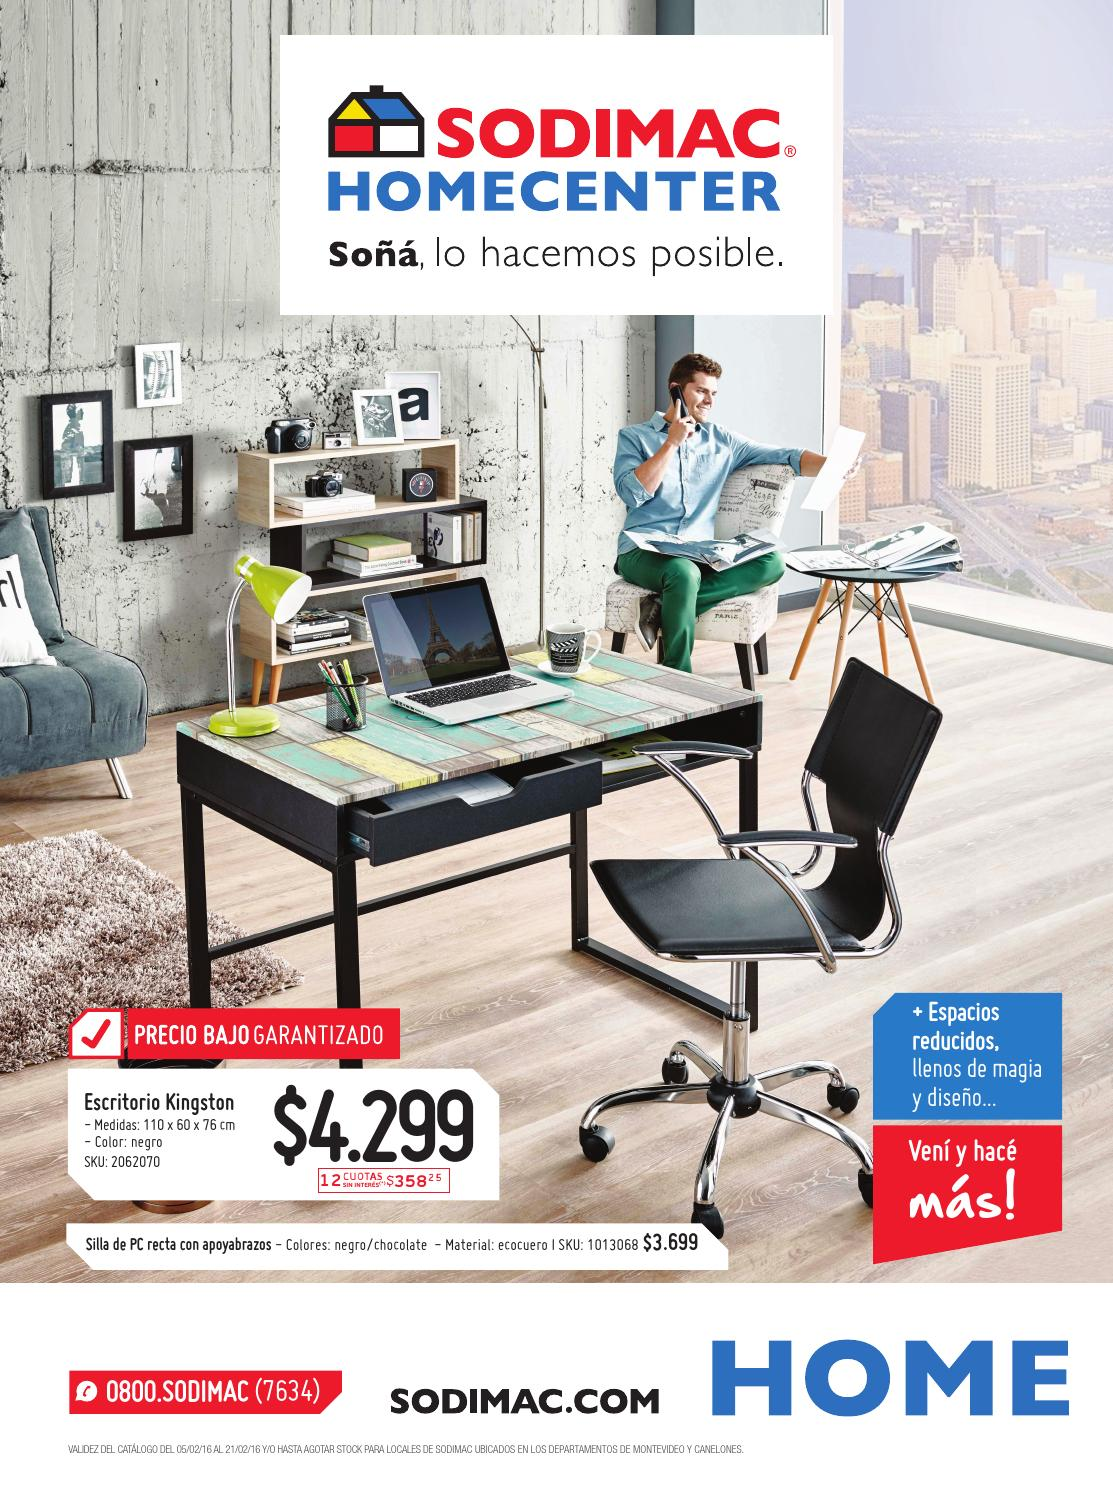 Sodimac homecenter cat logo febrero 2016 uy by sodimac for Escritorios homecenter